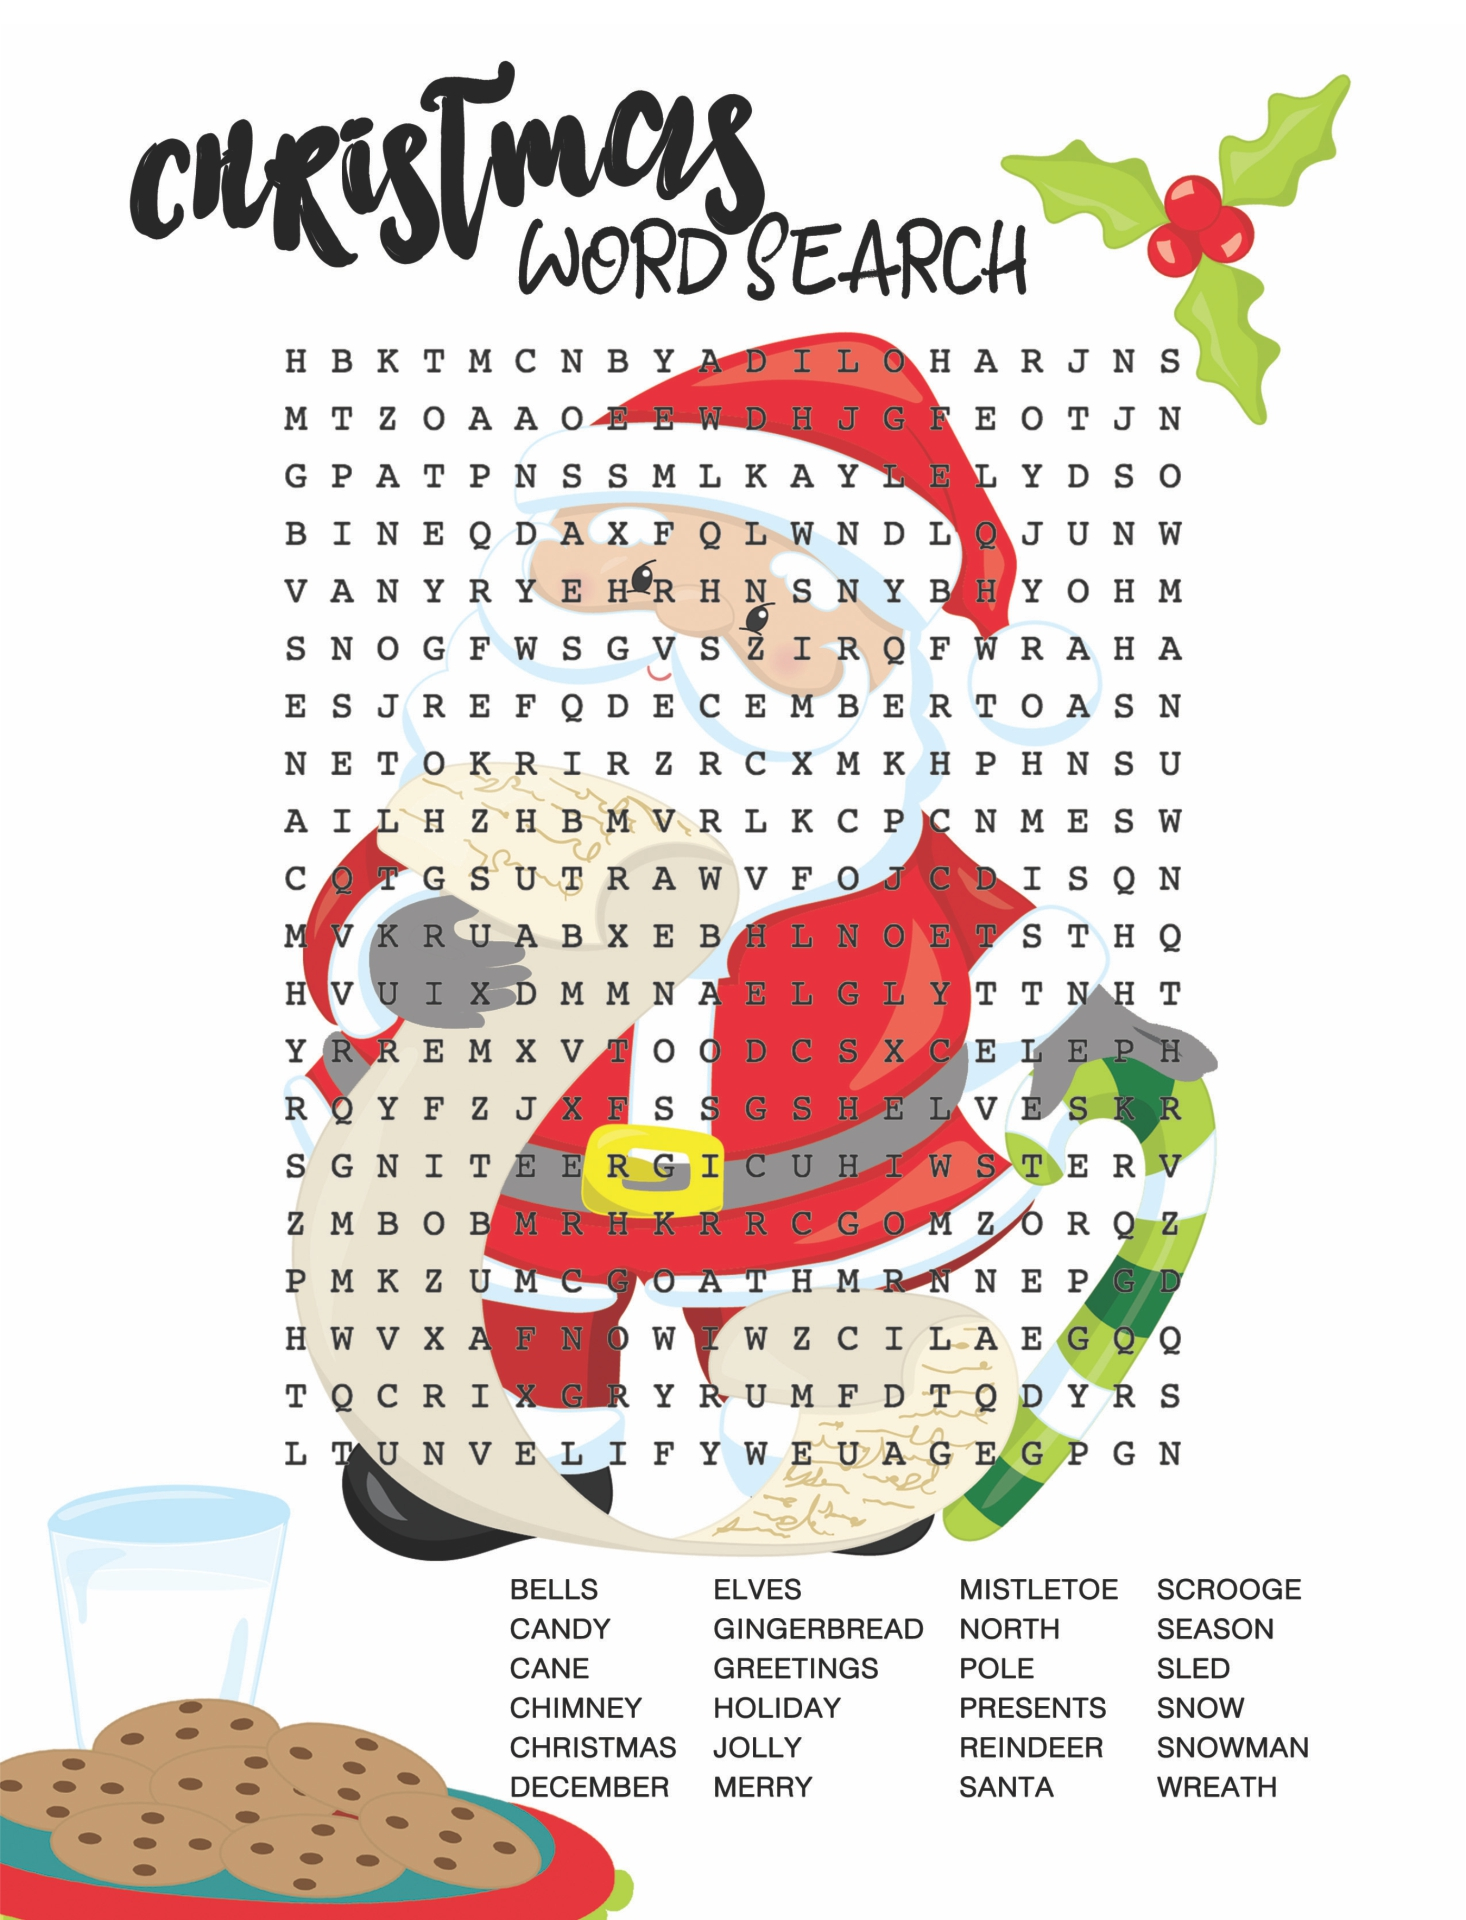 Worksheets Christmas Word Search Worksheets 6 best images of big printable christmas word searches search printable